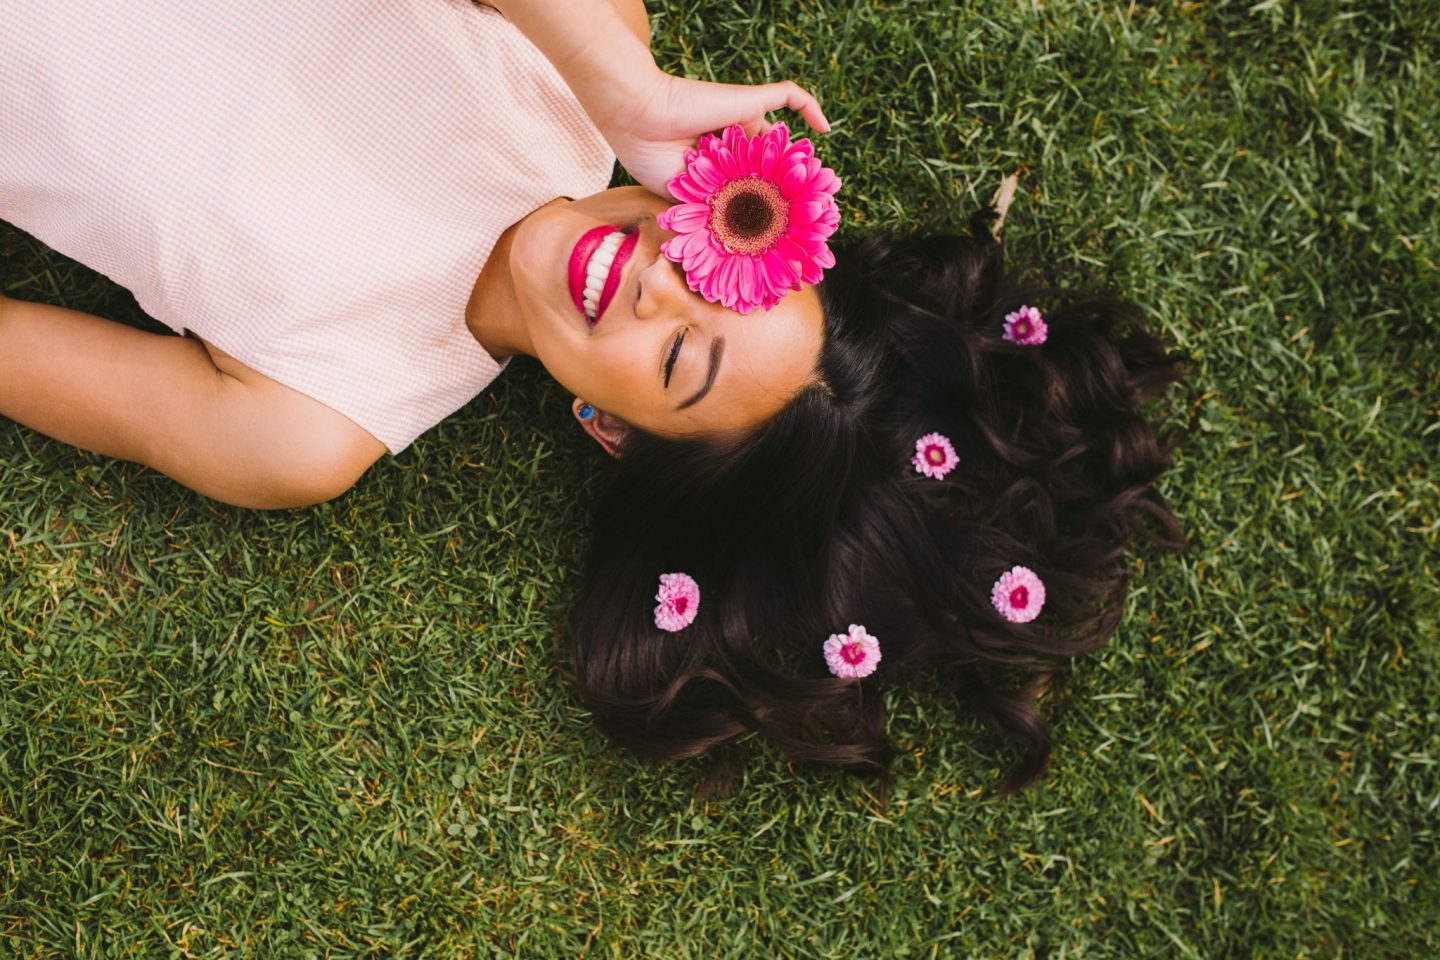 How to Pose with Flowers: 6 Ideas You Can Try